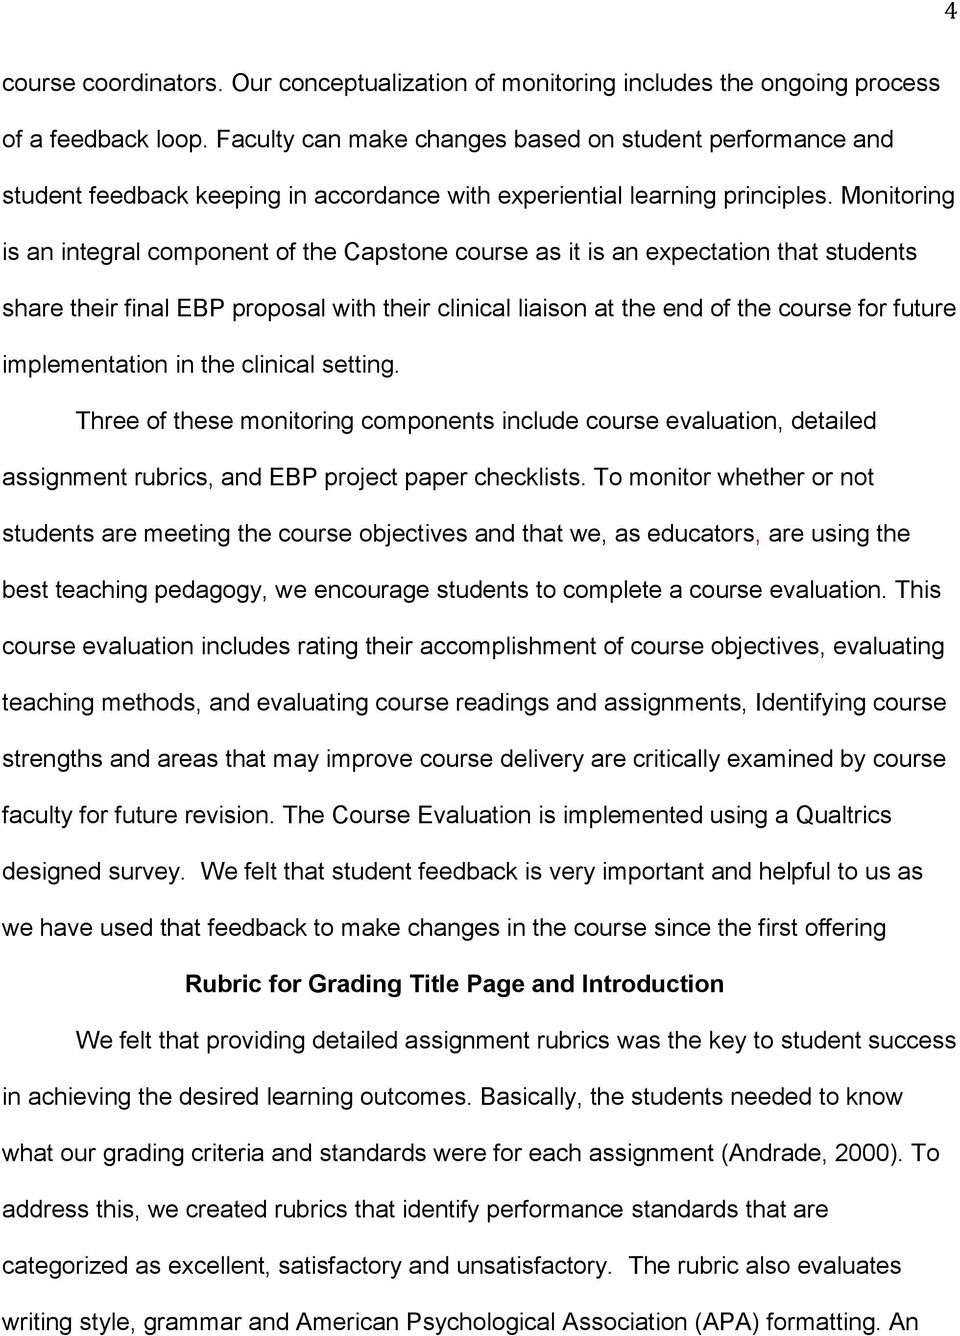 Monitoring is an integral component of the Capstone course as it is an expectation that students share their final EBP proposal with their clinical liaison at the end of the course for future